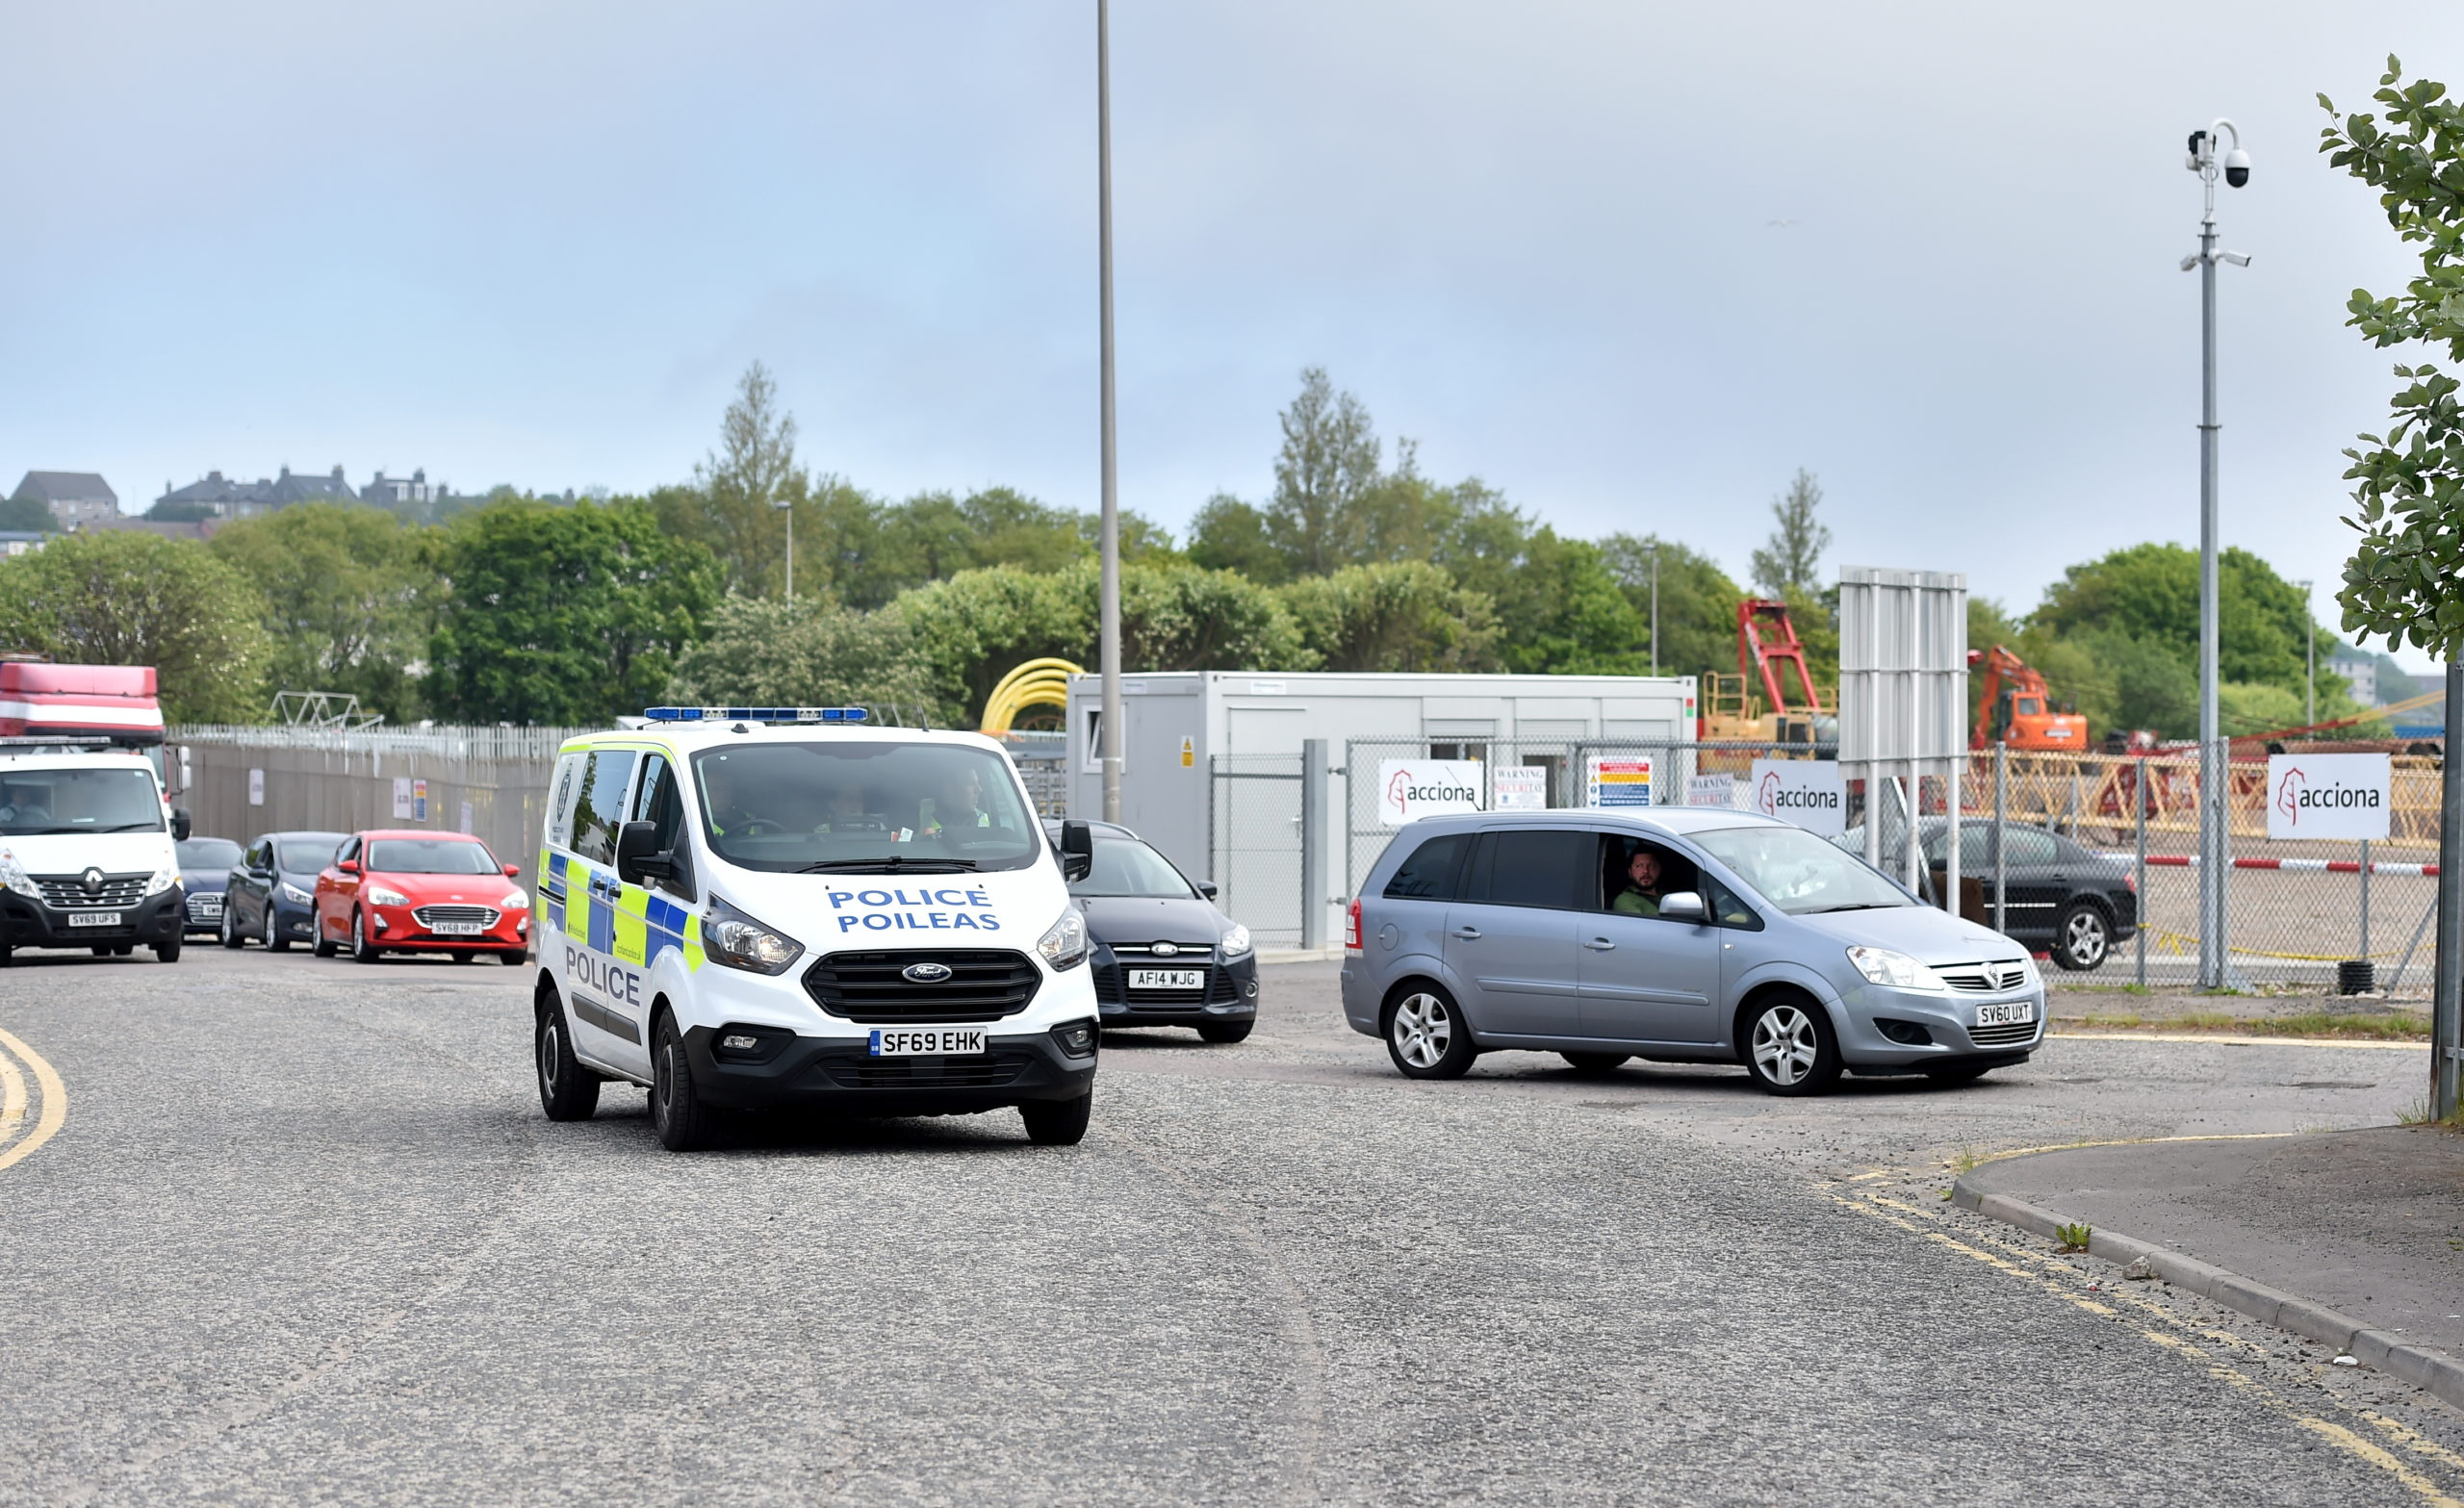 Police oversee traffic at the Tullos recycling centre